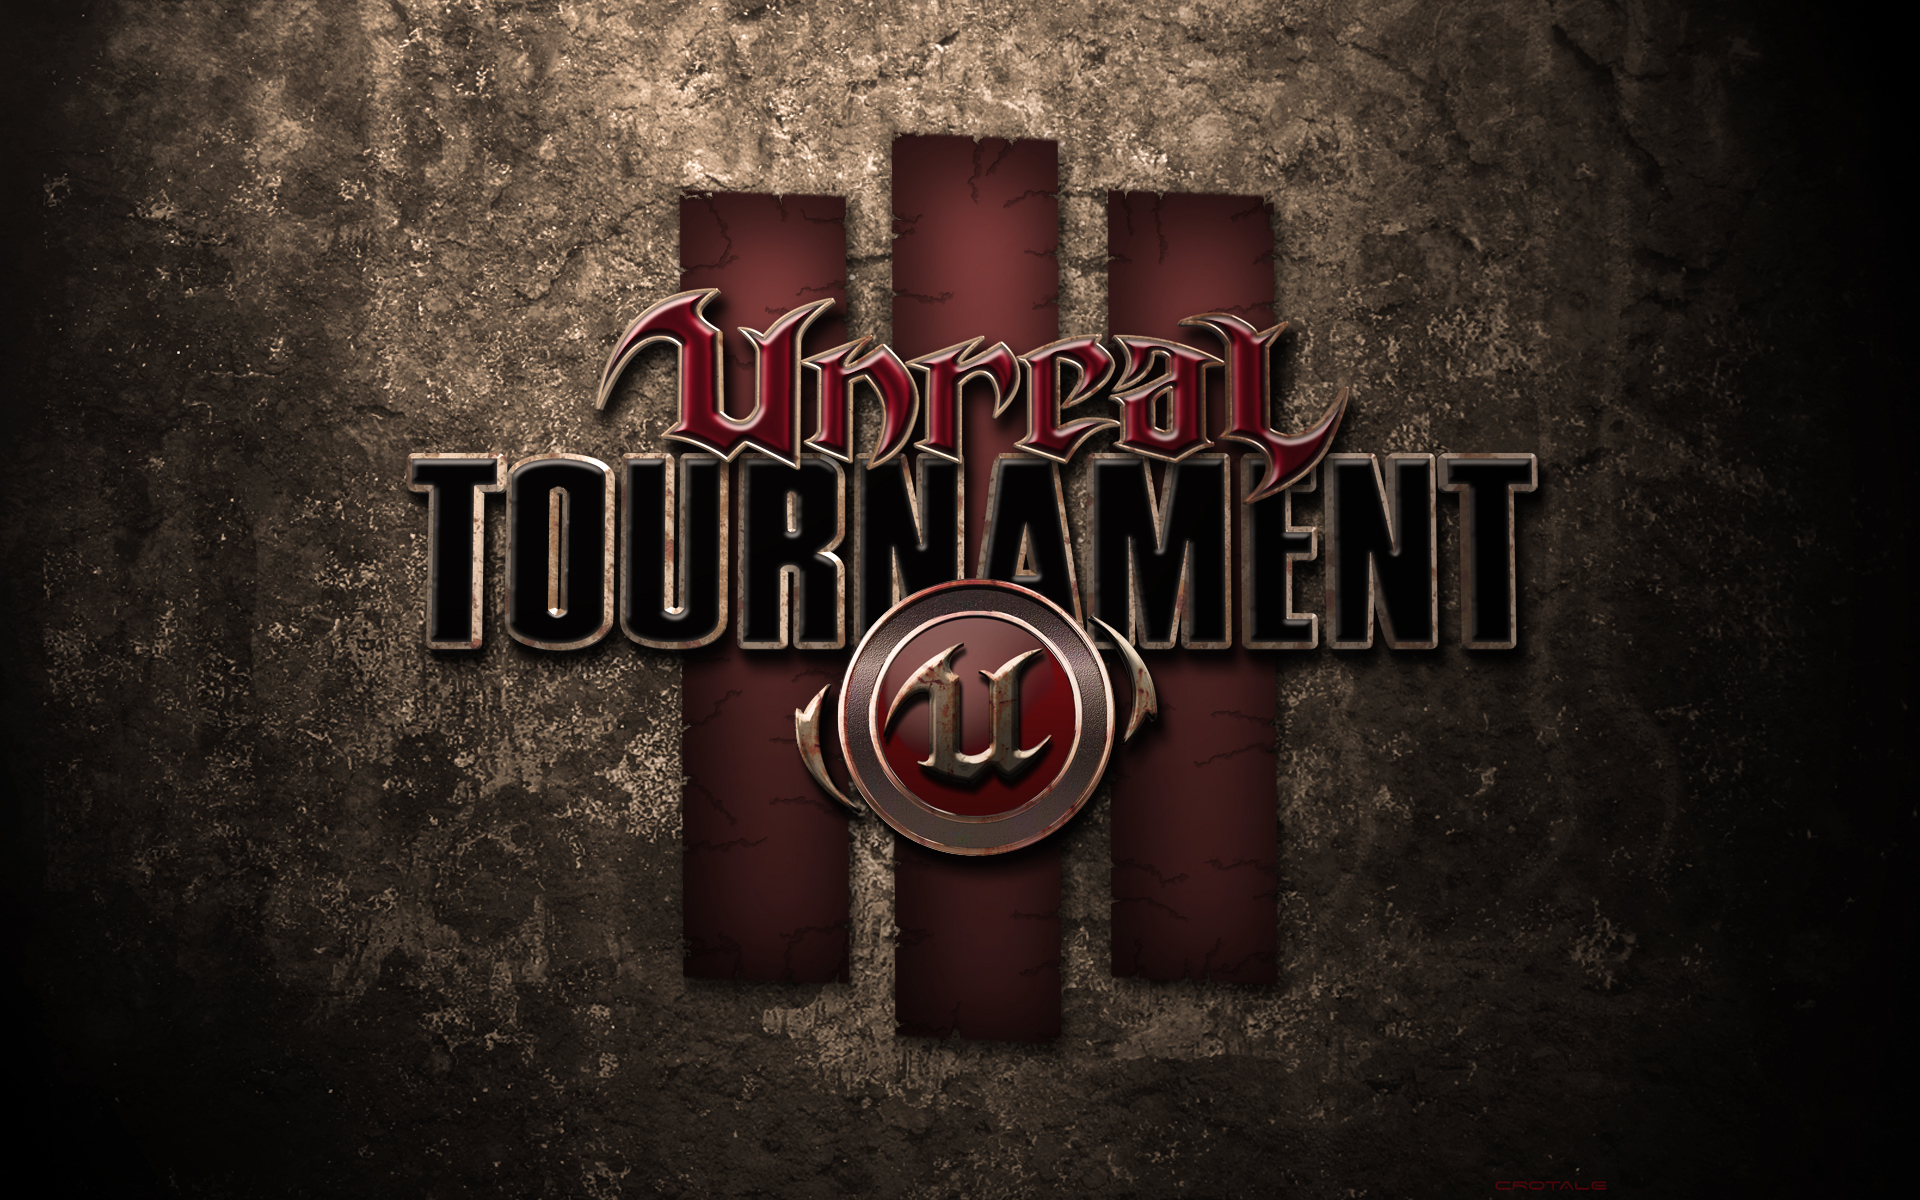 Unreal Tournament Fondo De Pantalla Hd Fondo De Escritorio